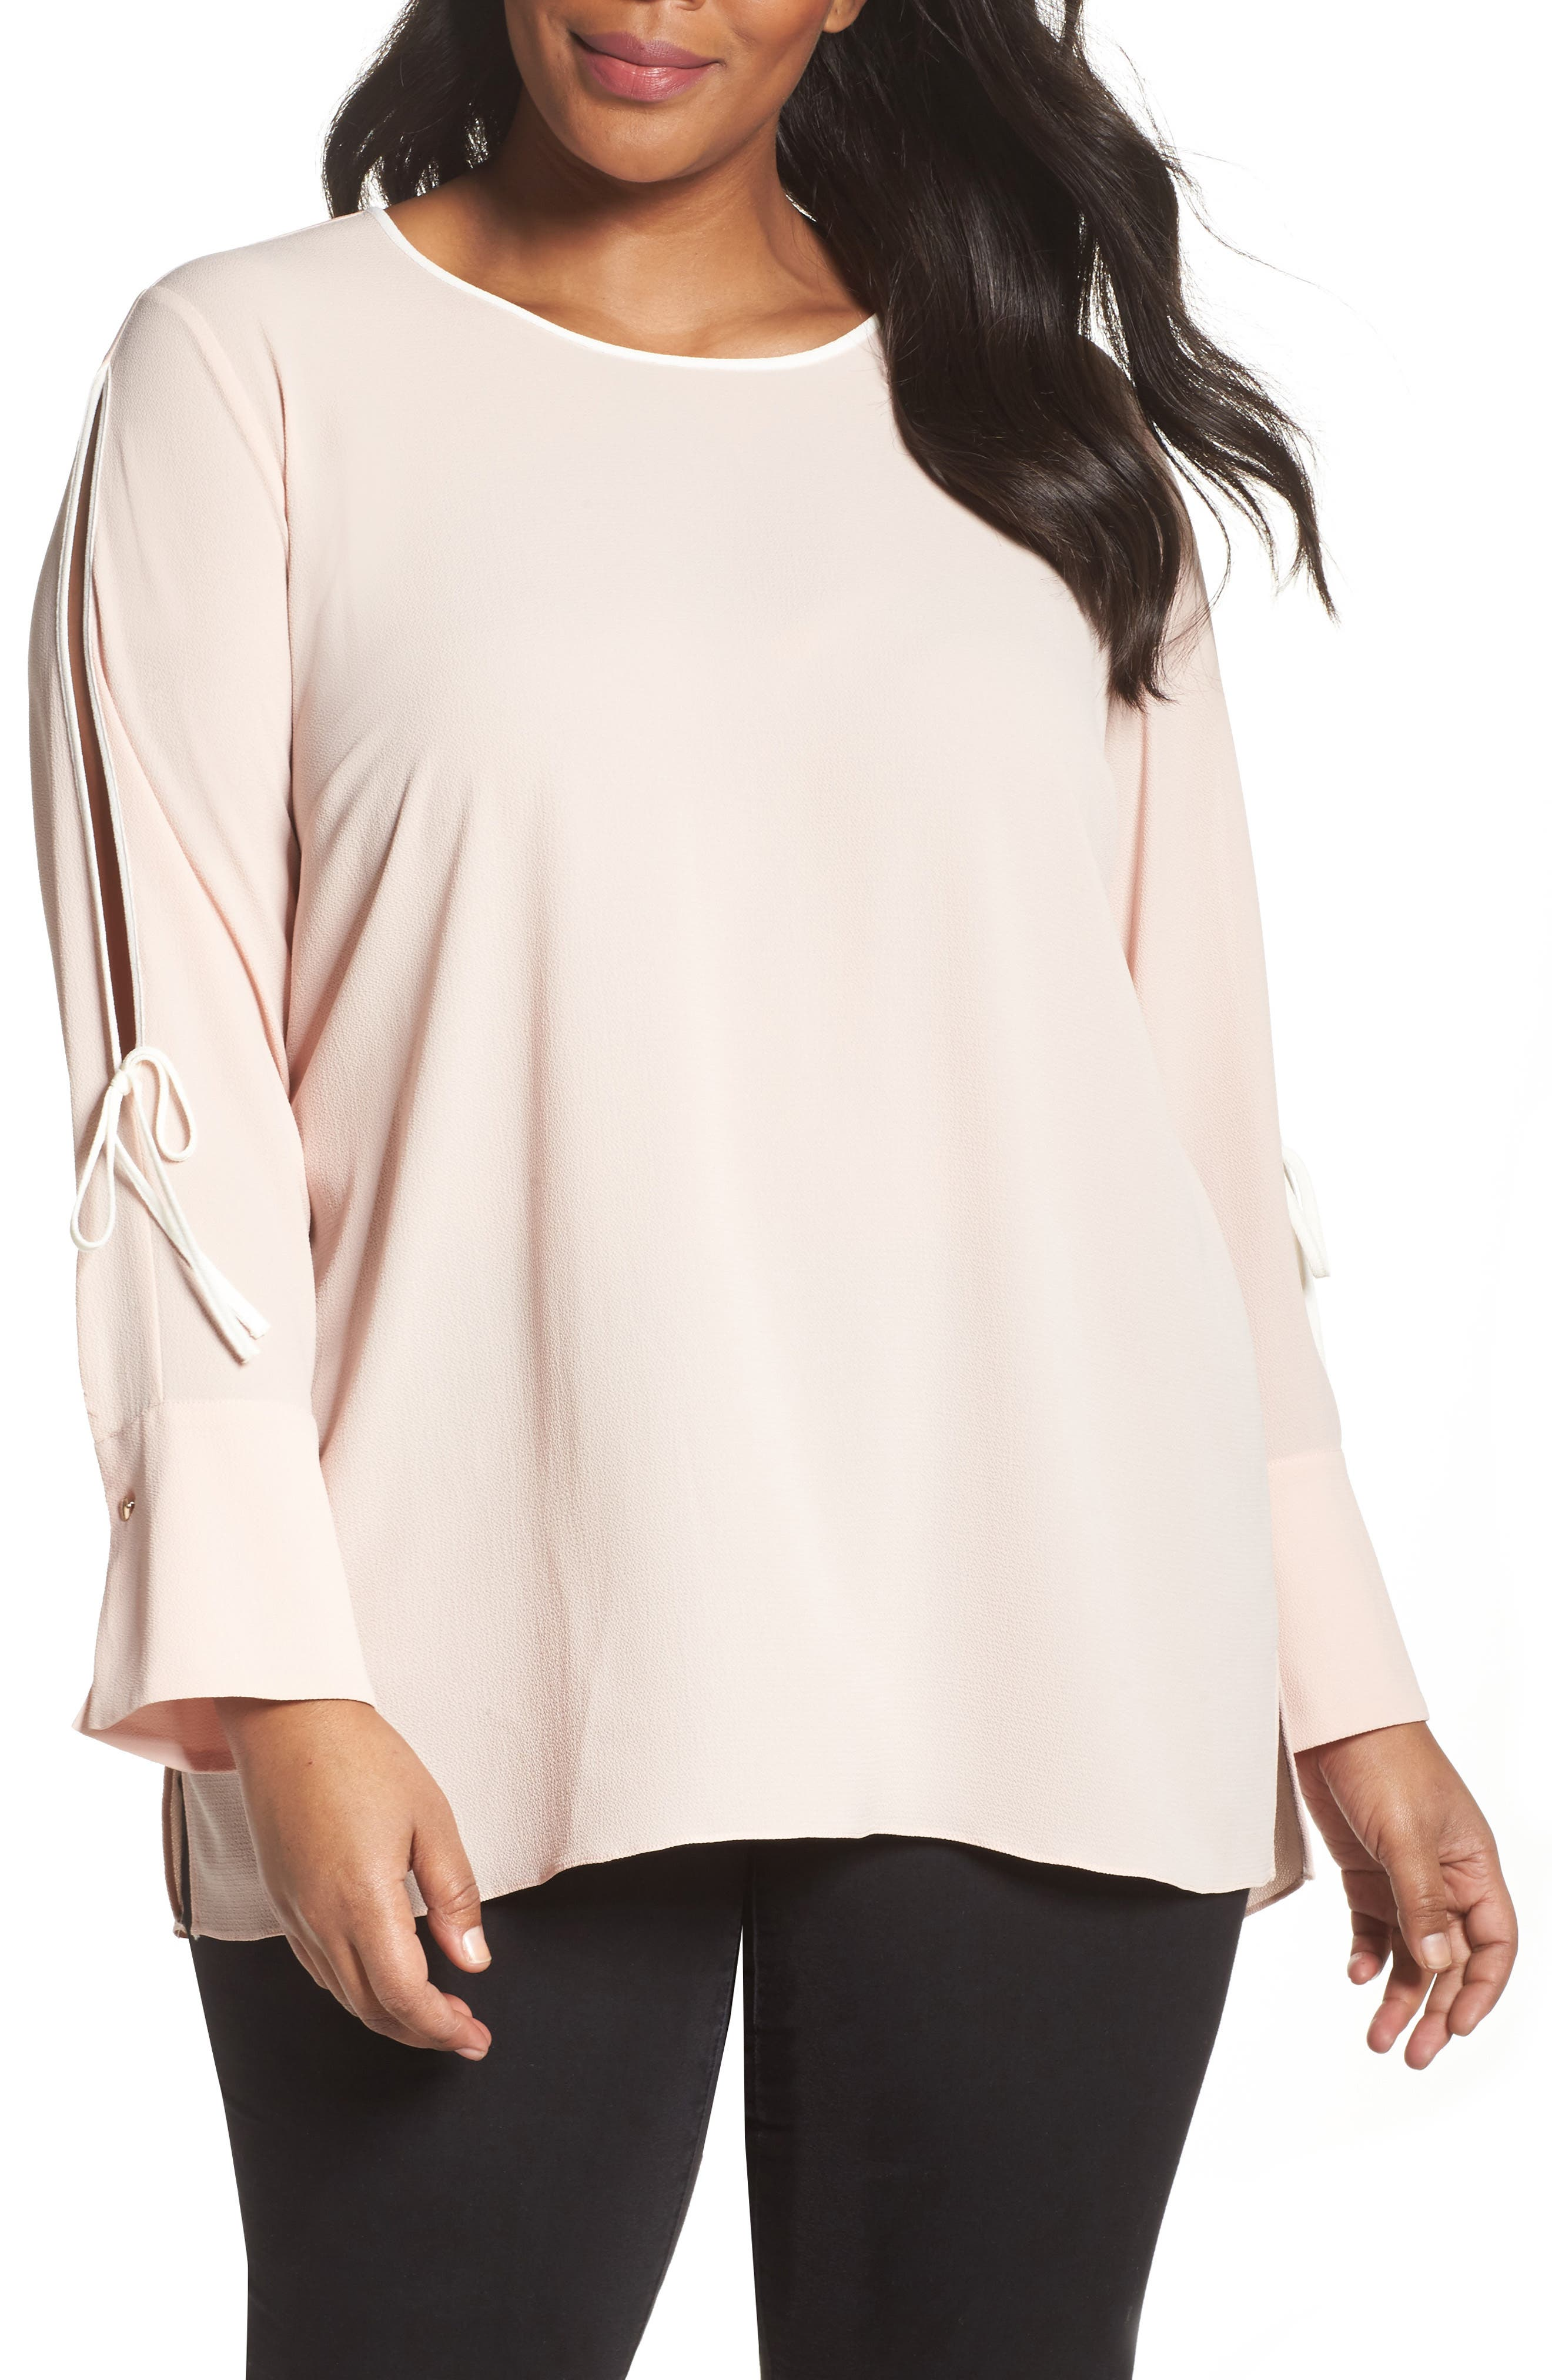 Alternate Image 1 Selected - Vince Camuto Bell Cuff Split Sleeve Shirt (Plus Size)